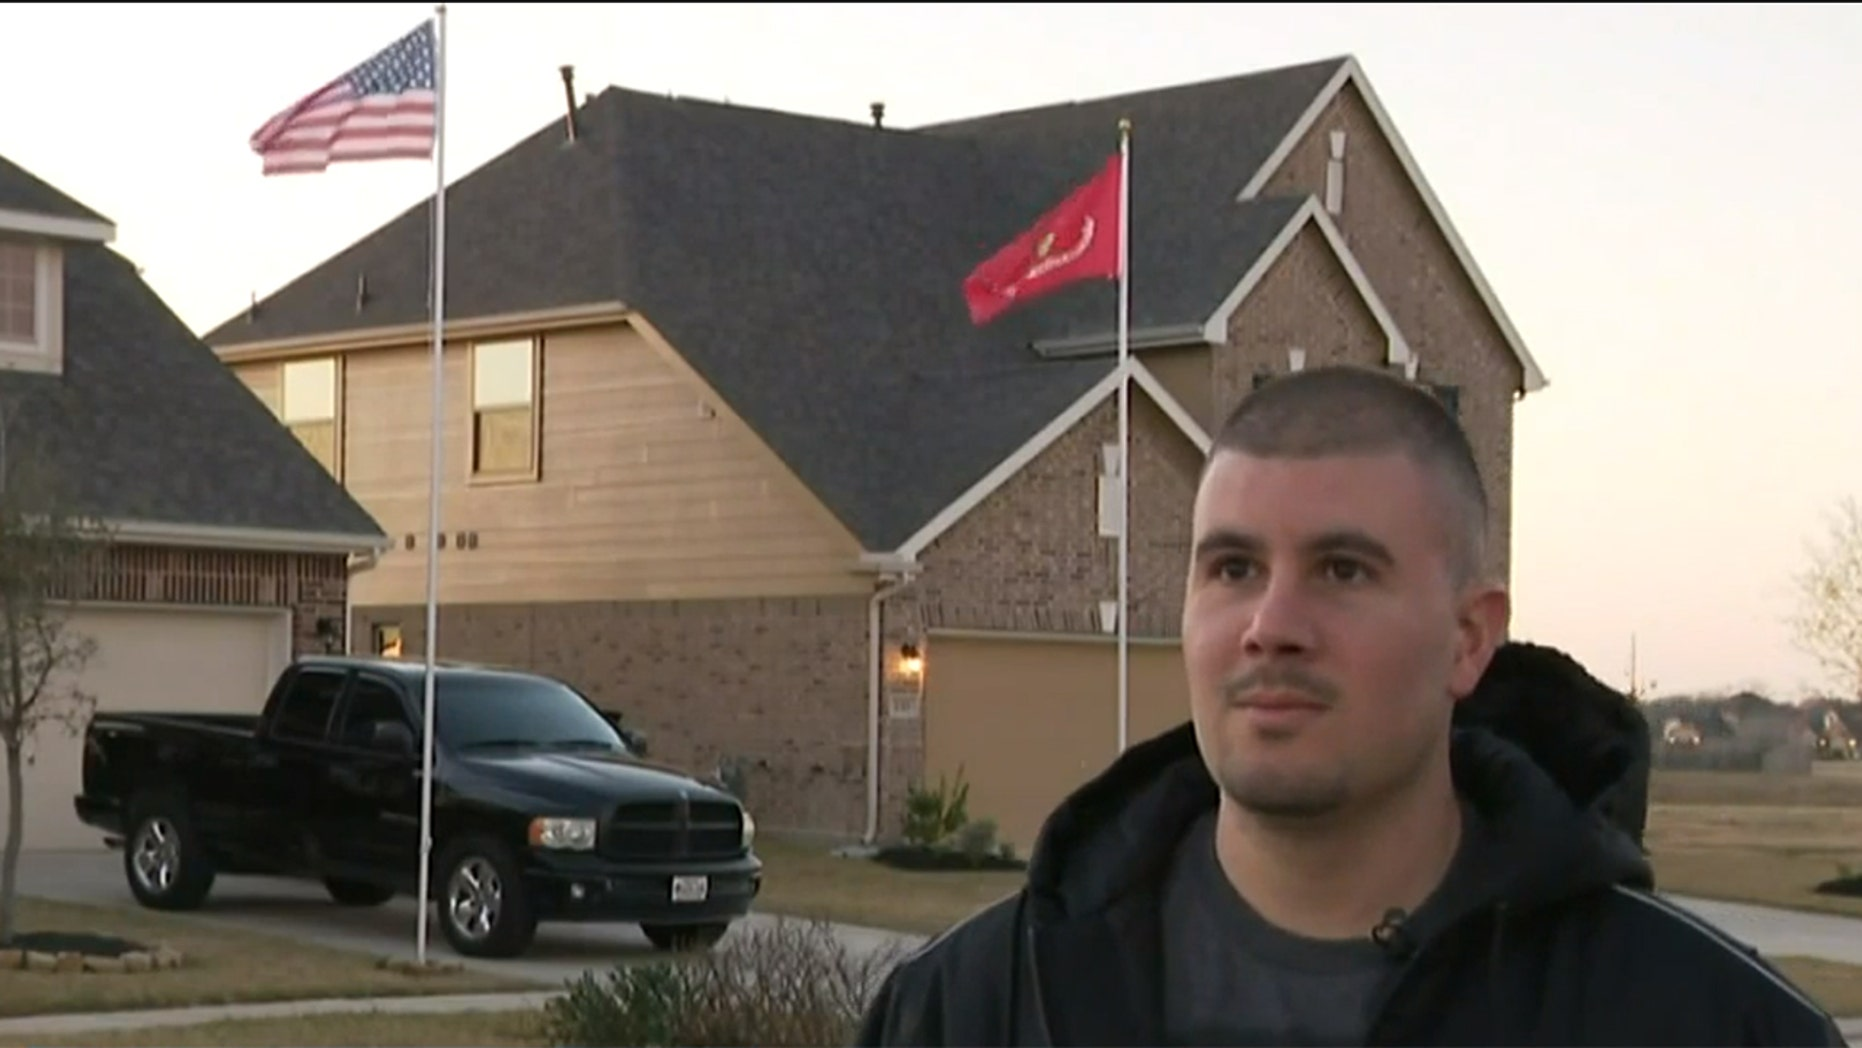 A Marine Corps veteran in Texas is fighting his homeowners association to let him fly his American and Marine Corps flags.